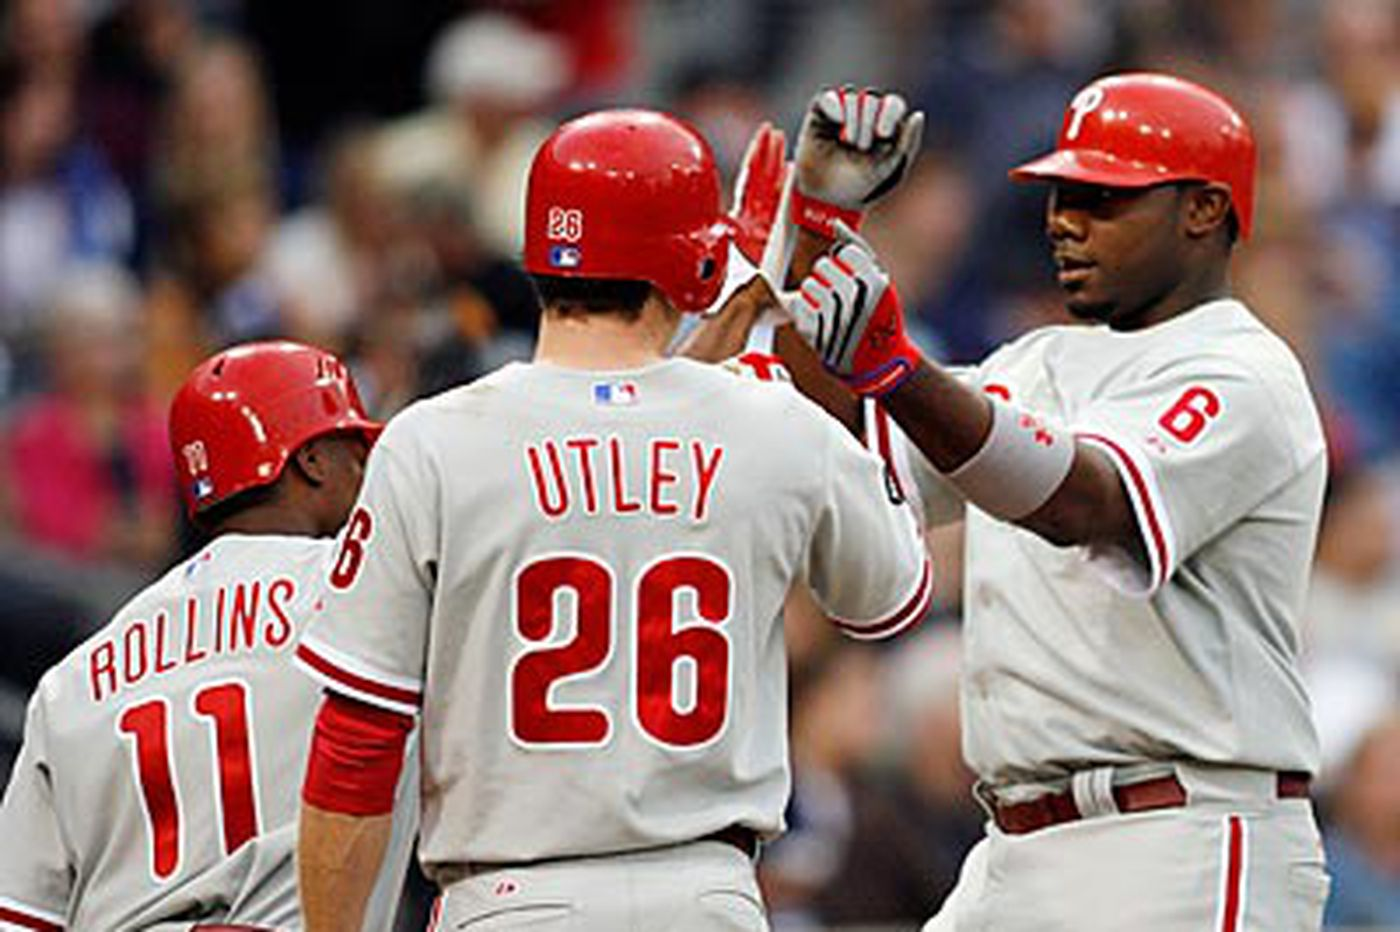 Phillies' five core position players getting older